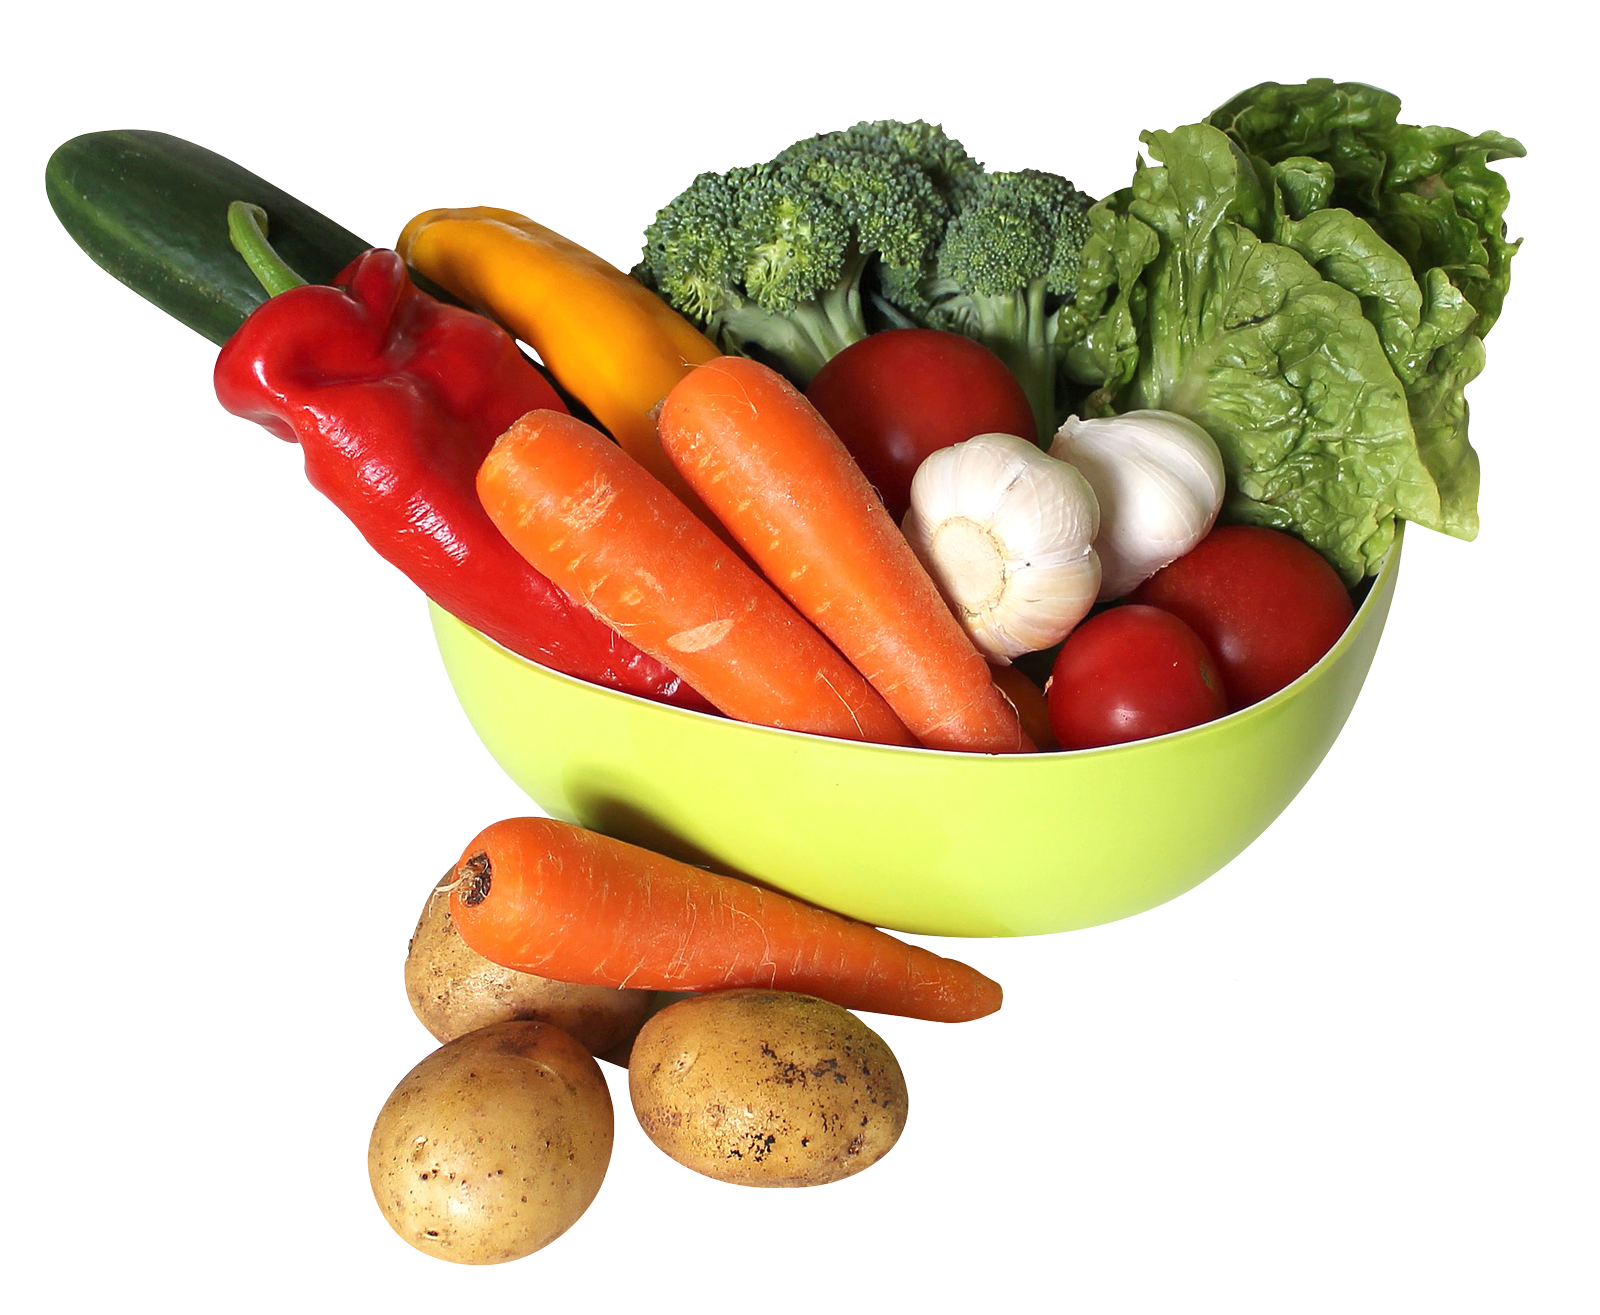 Carrots png bowl. Vegetables image purepng free